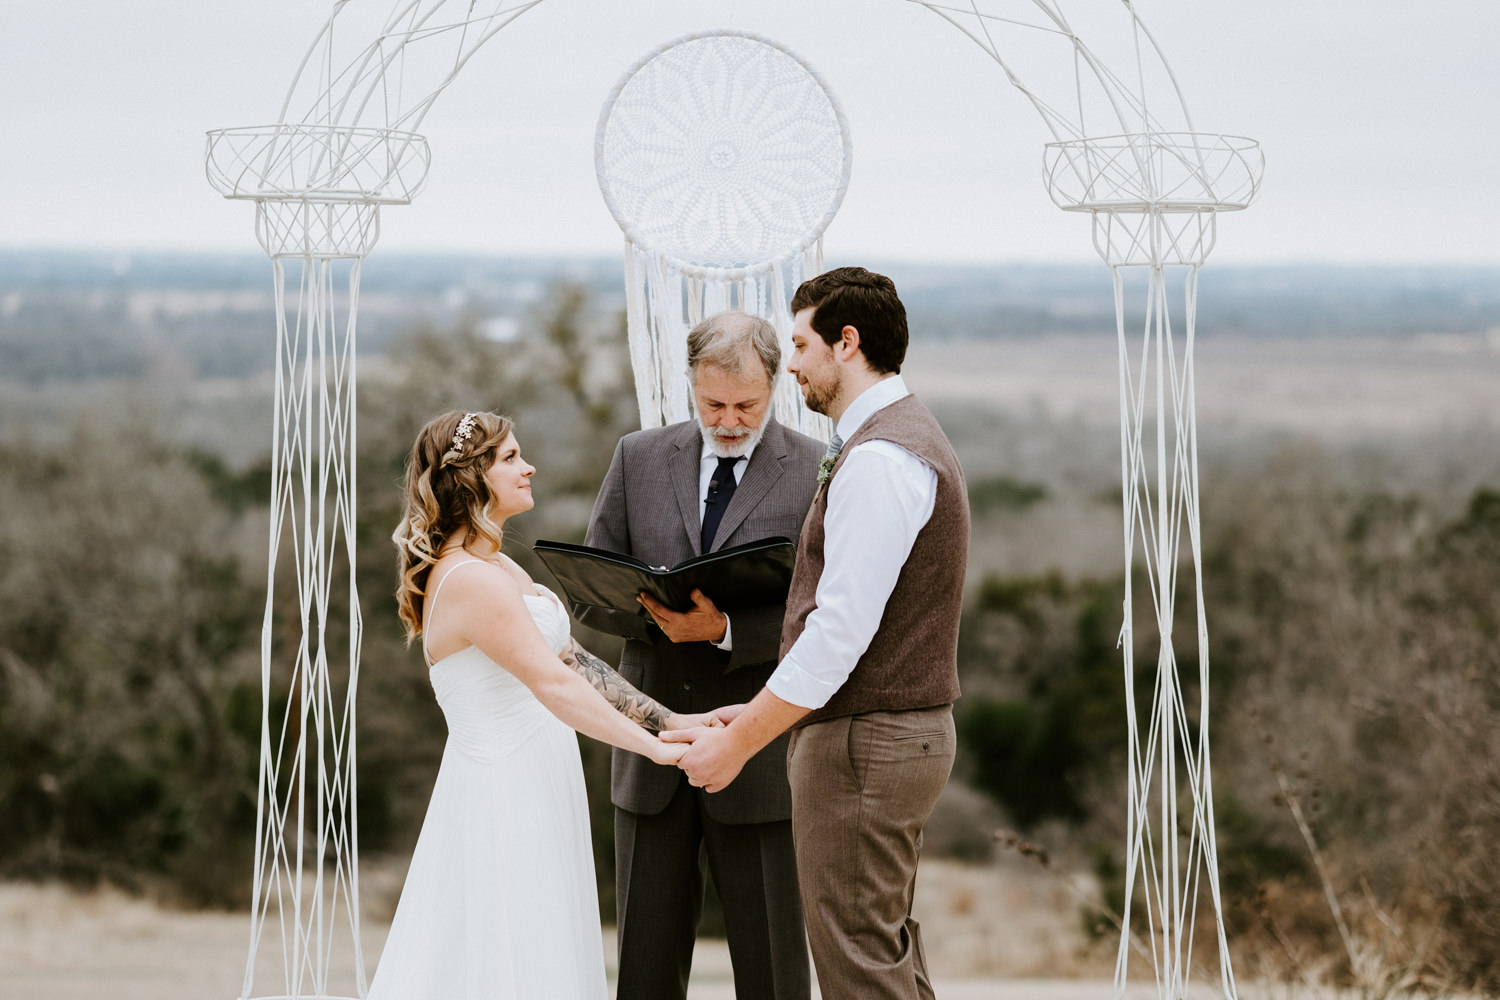 Bride and groom holding hands at austin texas wedding